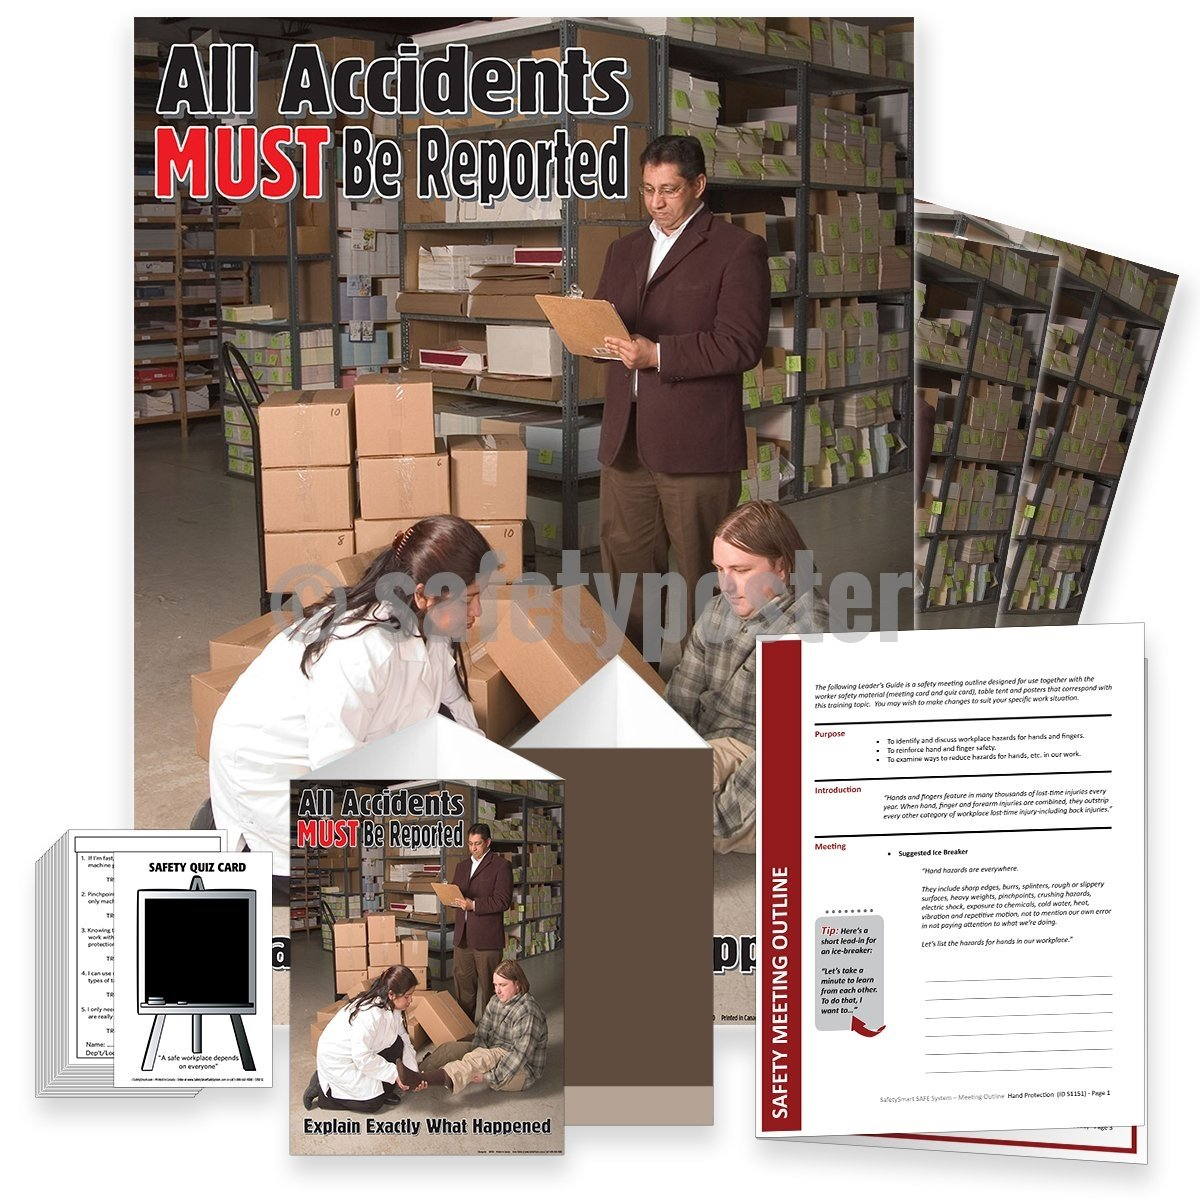 Safety Meeting Kit - All Accidents Must Be Reported Kits